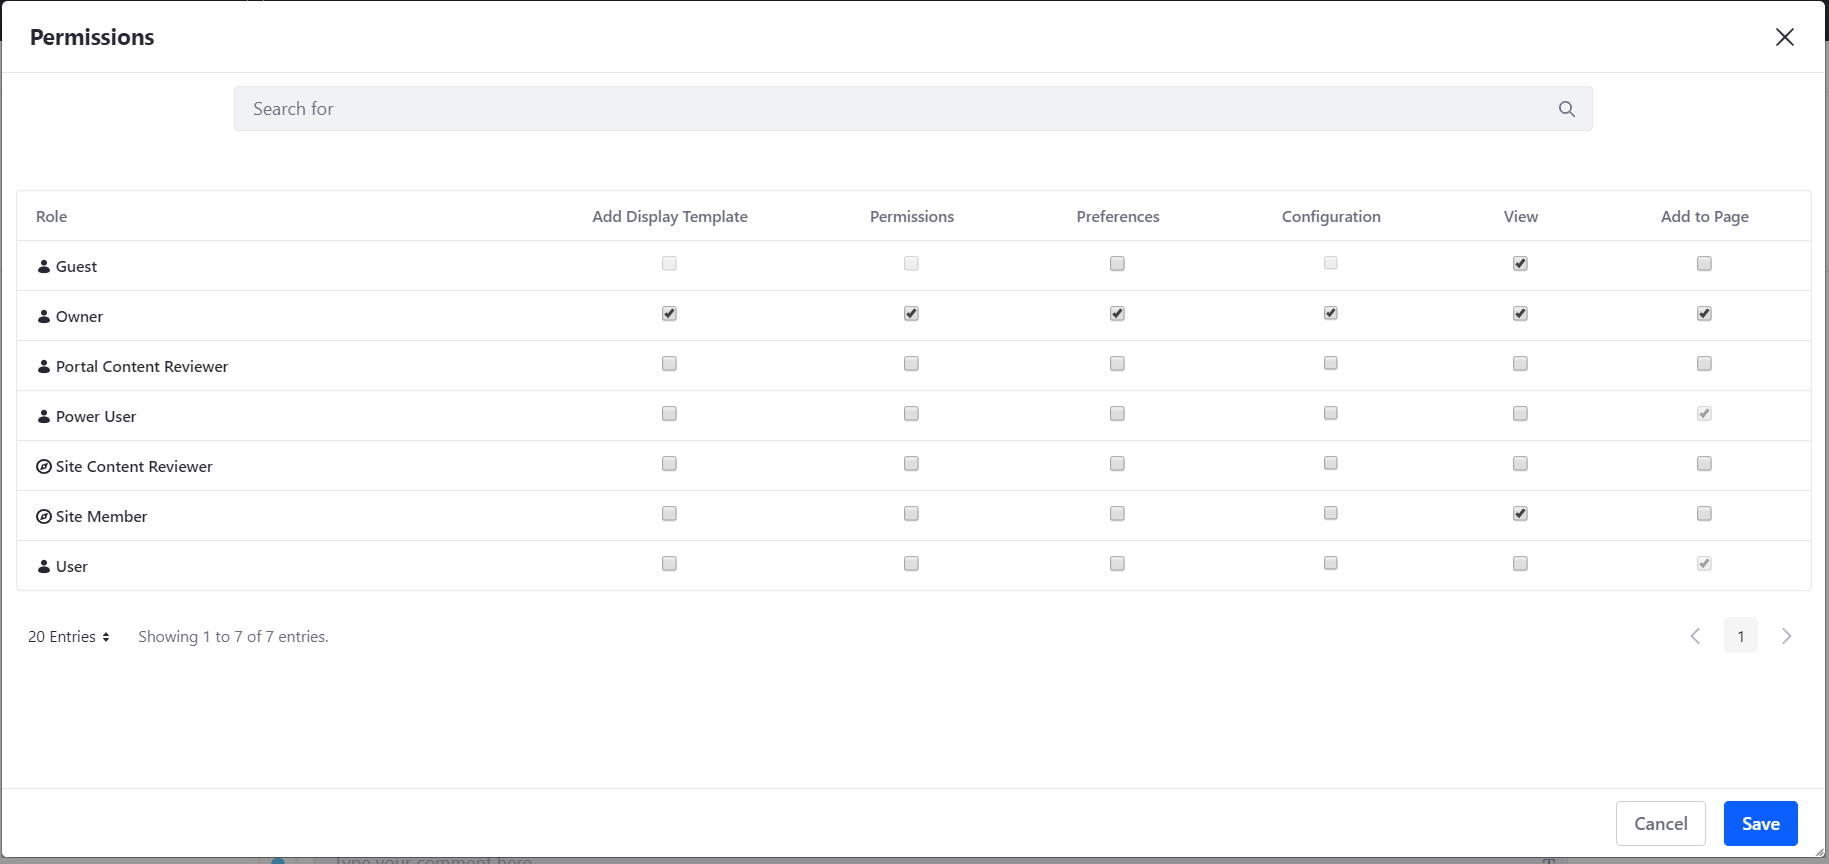 Figure 1: Viewing the permissions configuration for a widget.